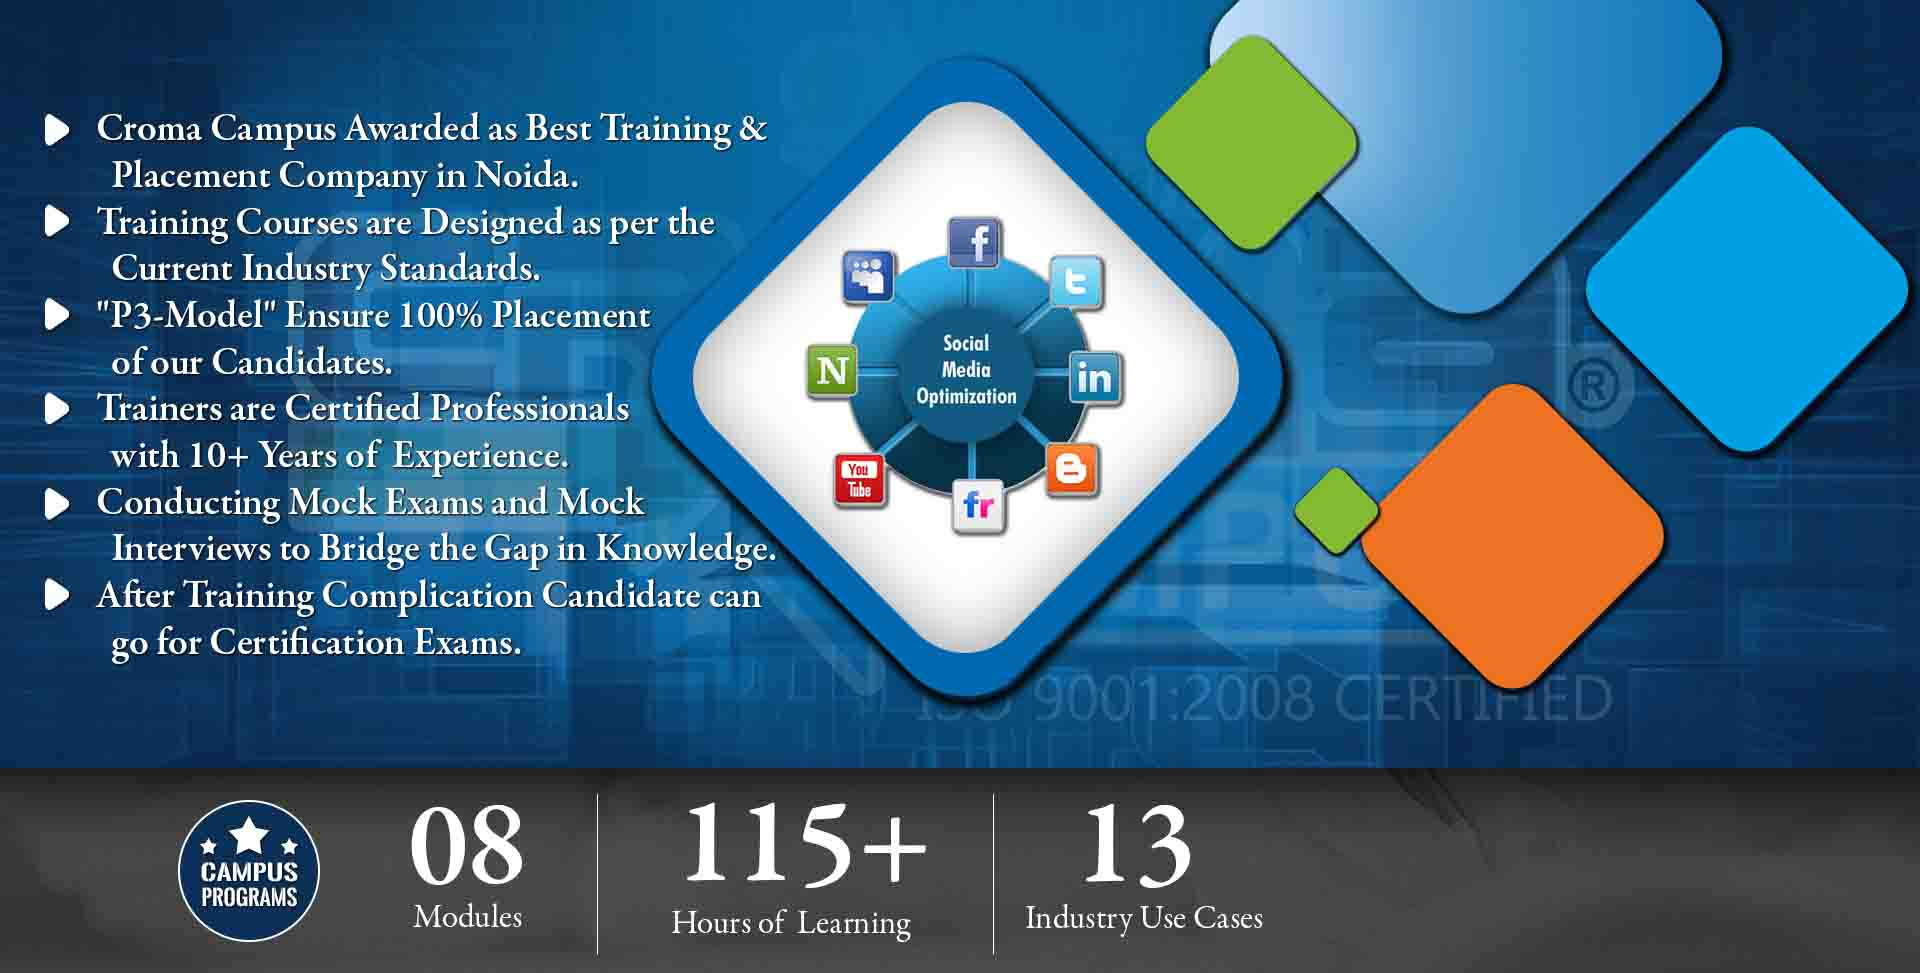 SMO Training in Noida- Croma Campus